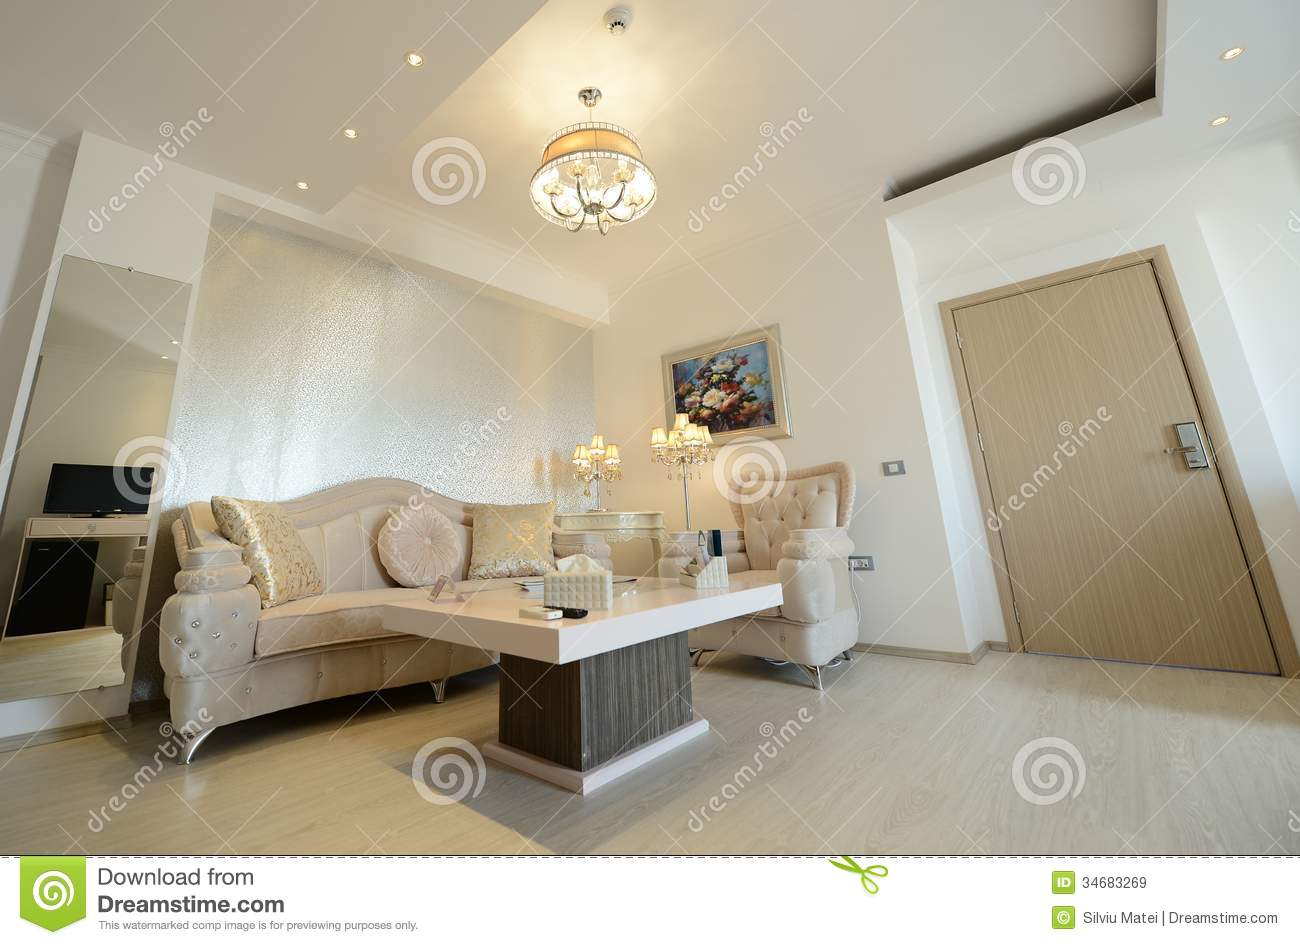 Modern hotel room interior stock photo image 18197840 - Luxury Living Room Of A Modern Hotel Royalty Free Stock